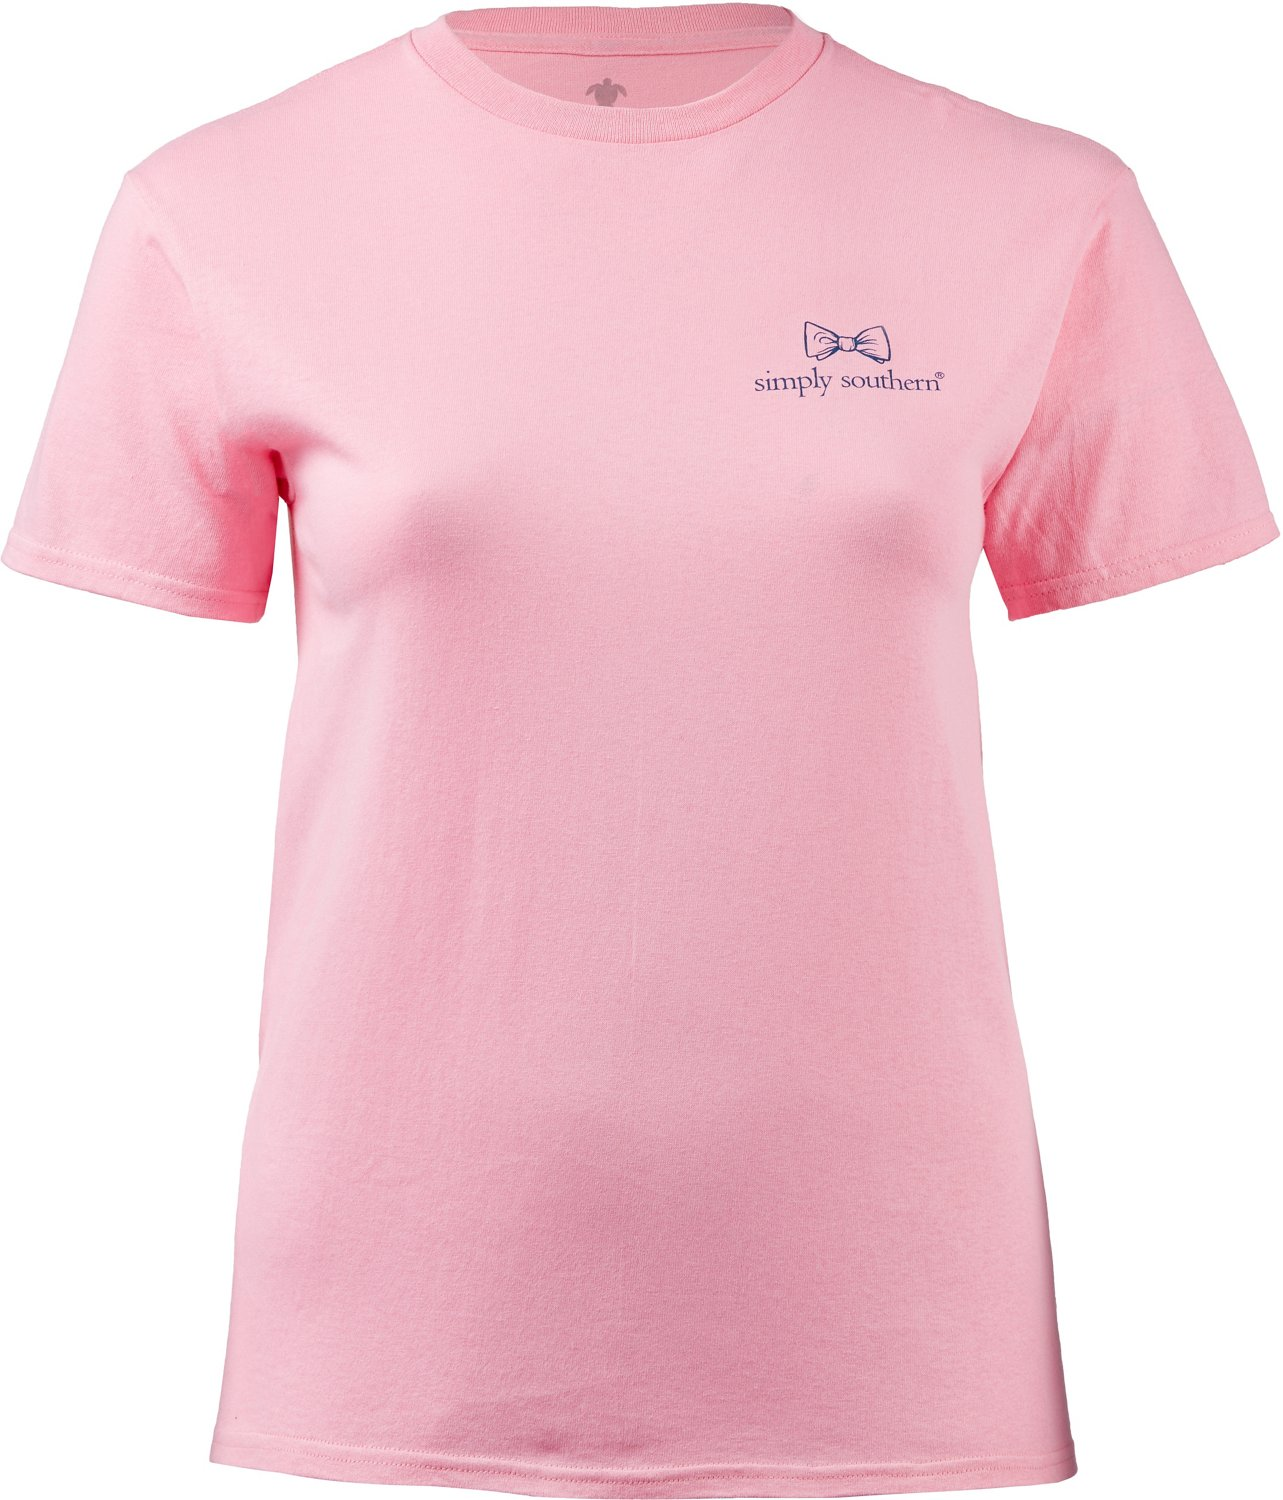 Simply Southern Women's Enjoy the Ride T-shirt - view number 1